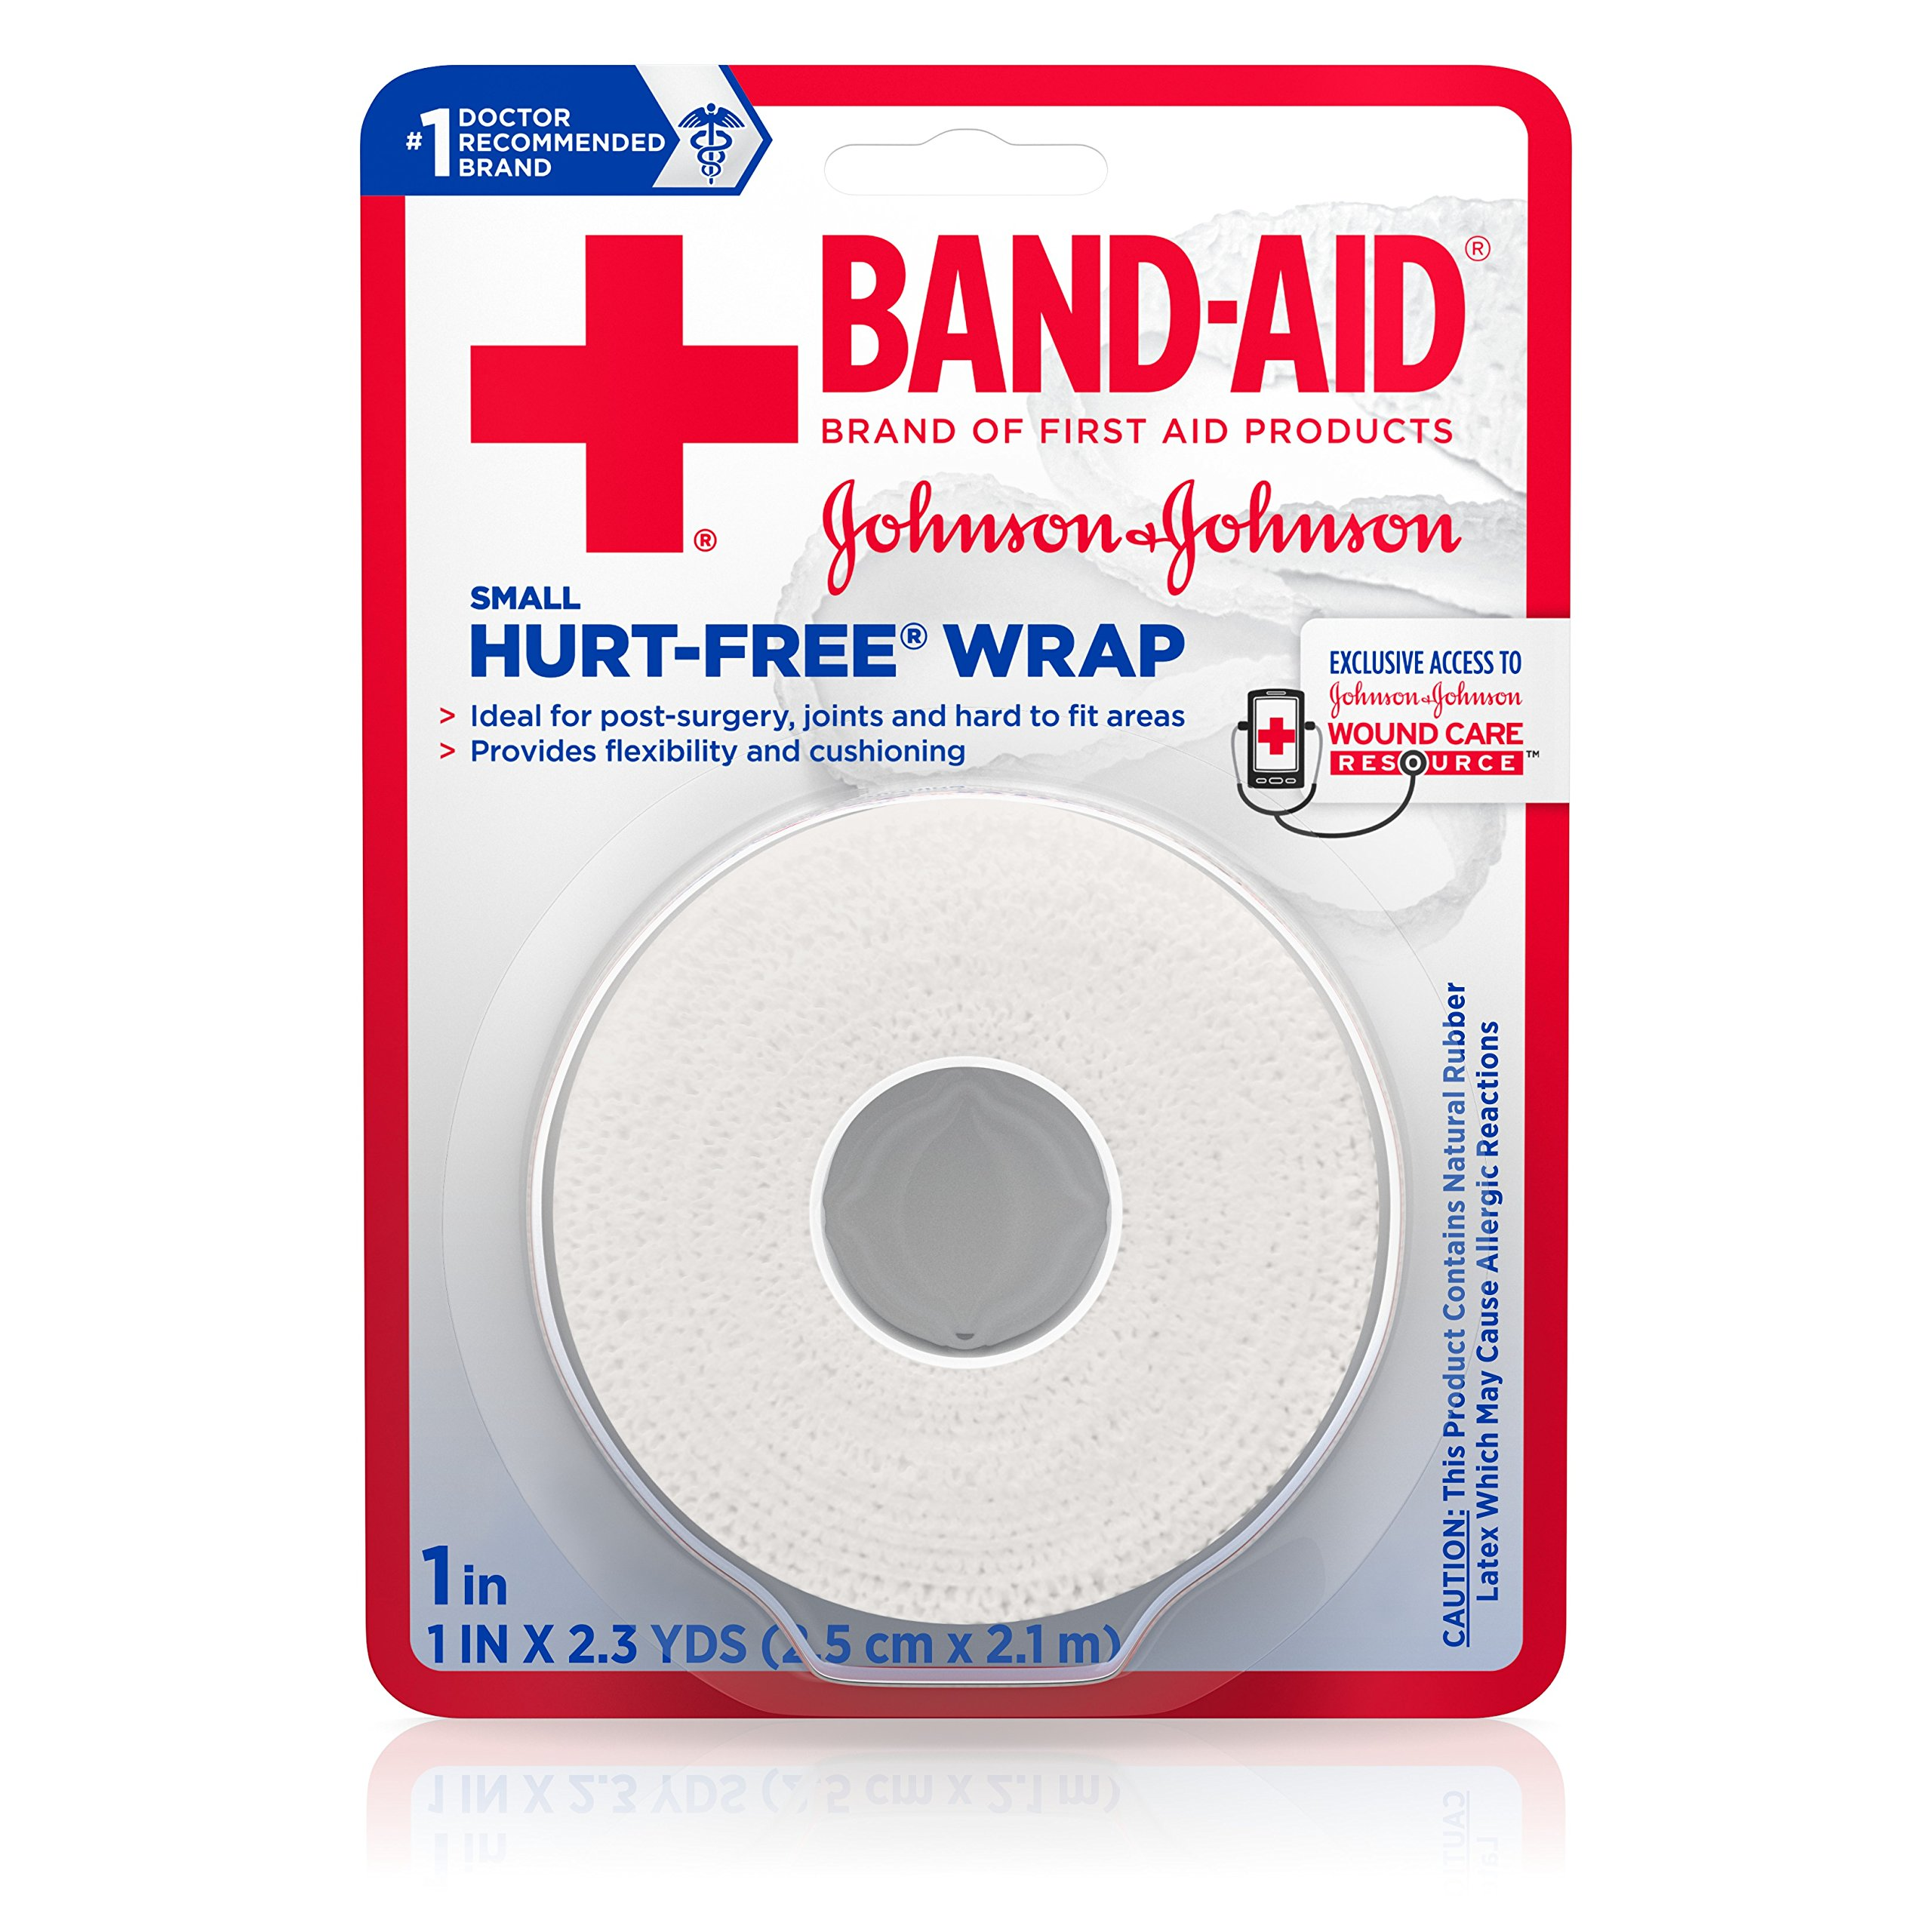 Band-Aid Hurt-Free Wrap For Securing Dressings On Post-Surgical Wounds, 1 Inch By 2.3 Yards, Small (Pack of 6)